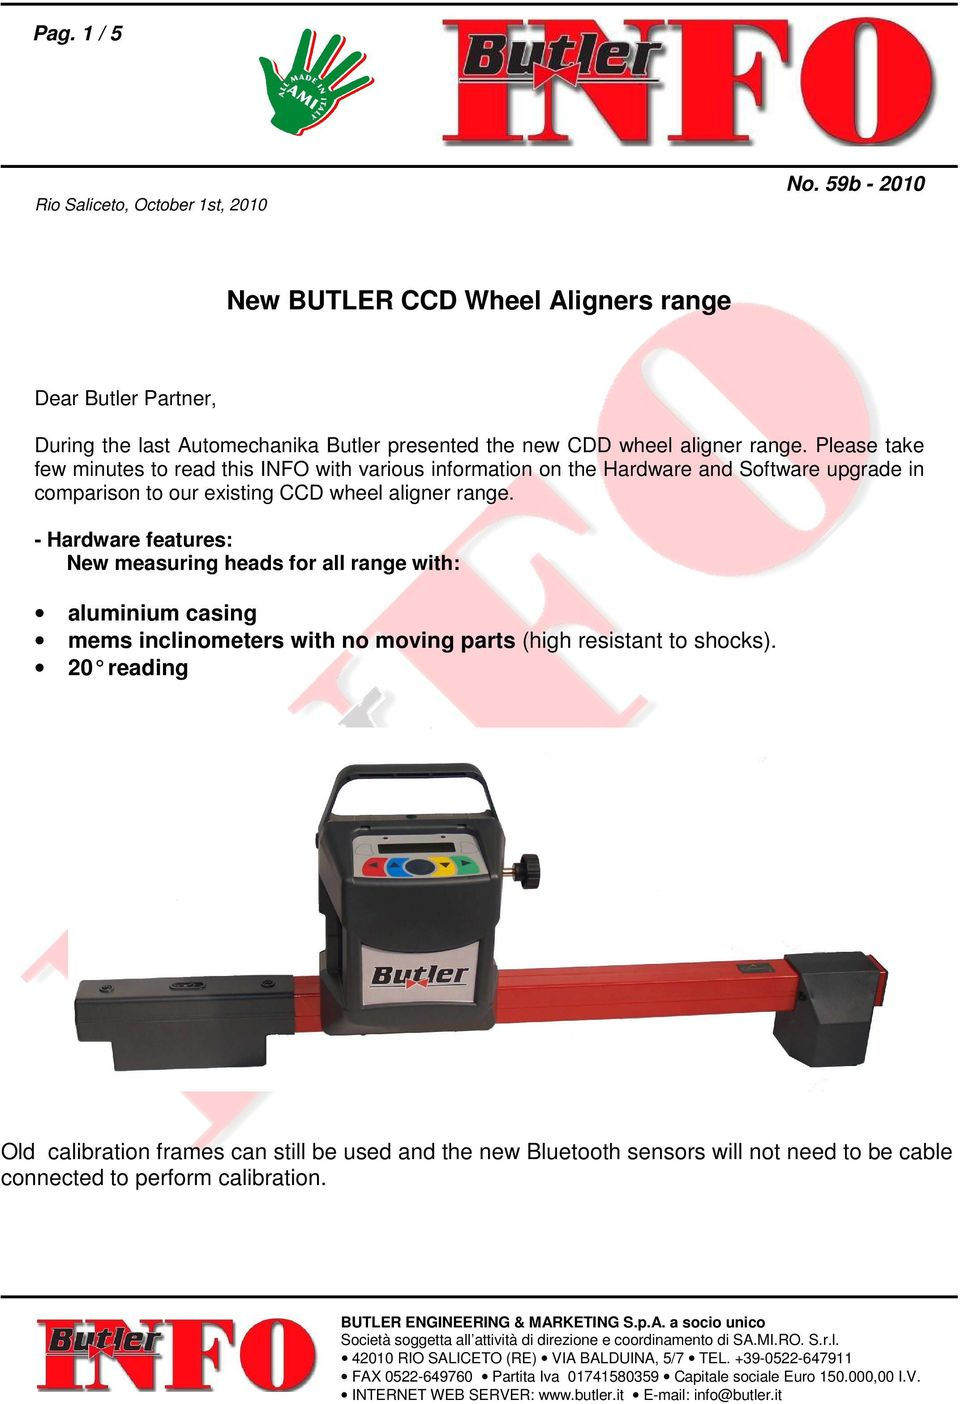 Please take few minutes to read this INFO with various information on the Hardware and Software upgrade in comparison to our existing CCD wheel aligner range.